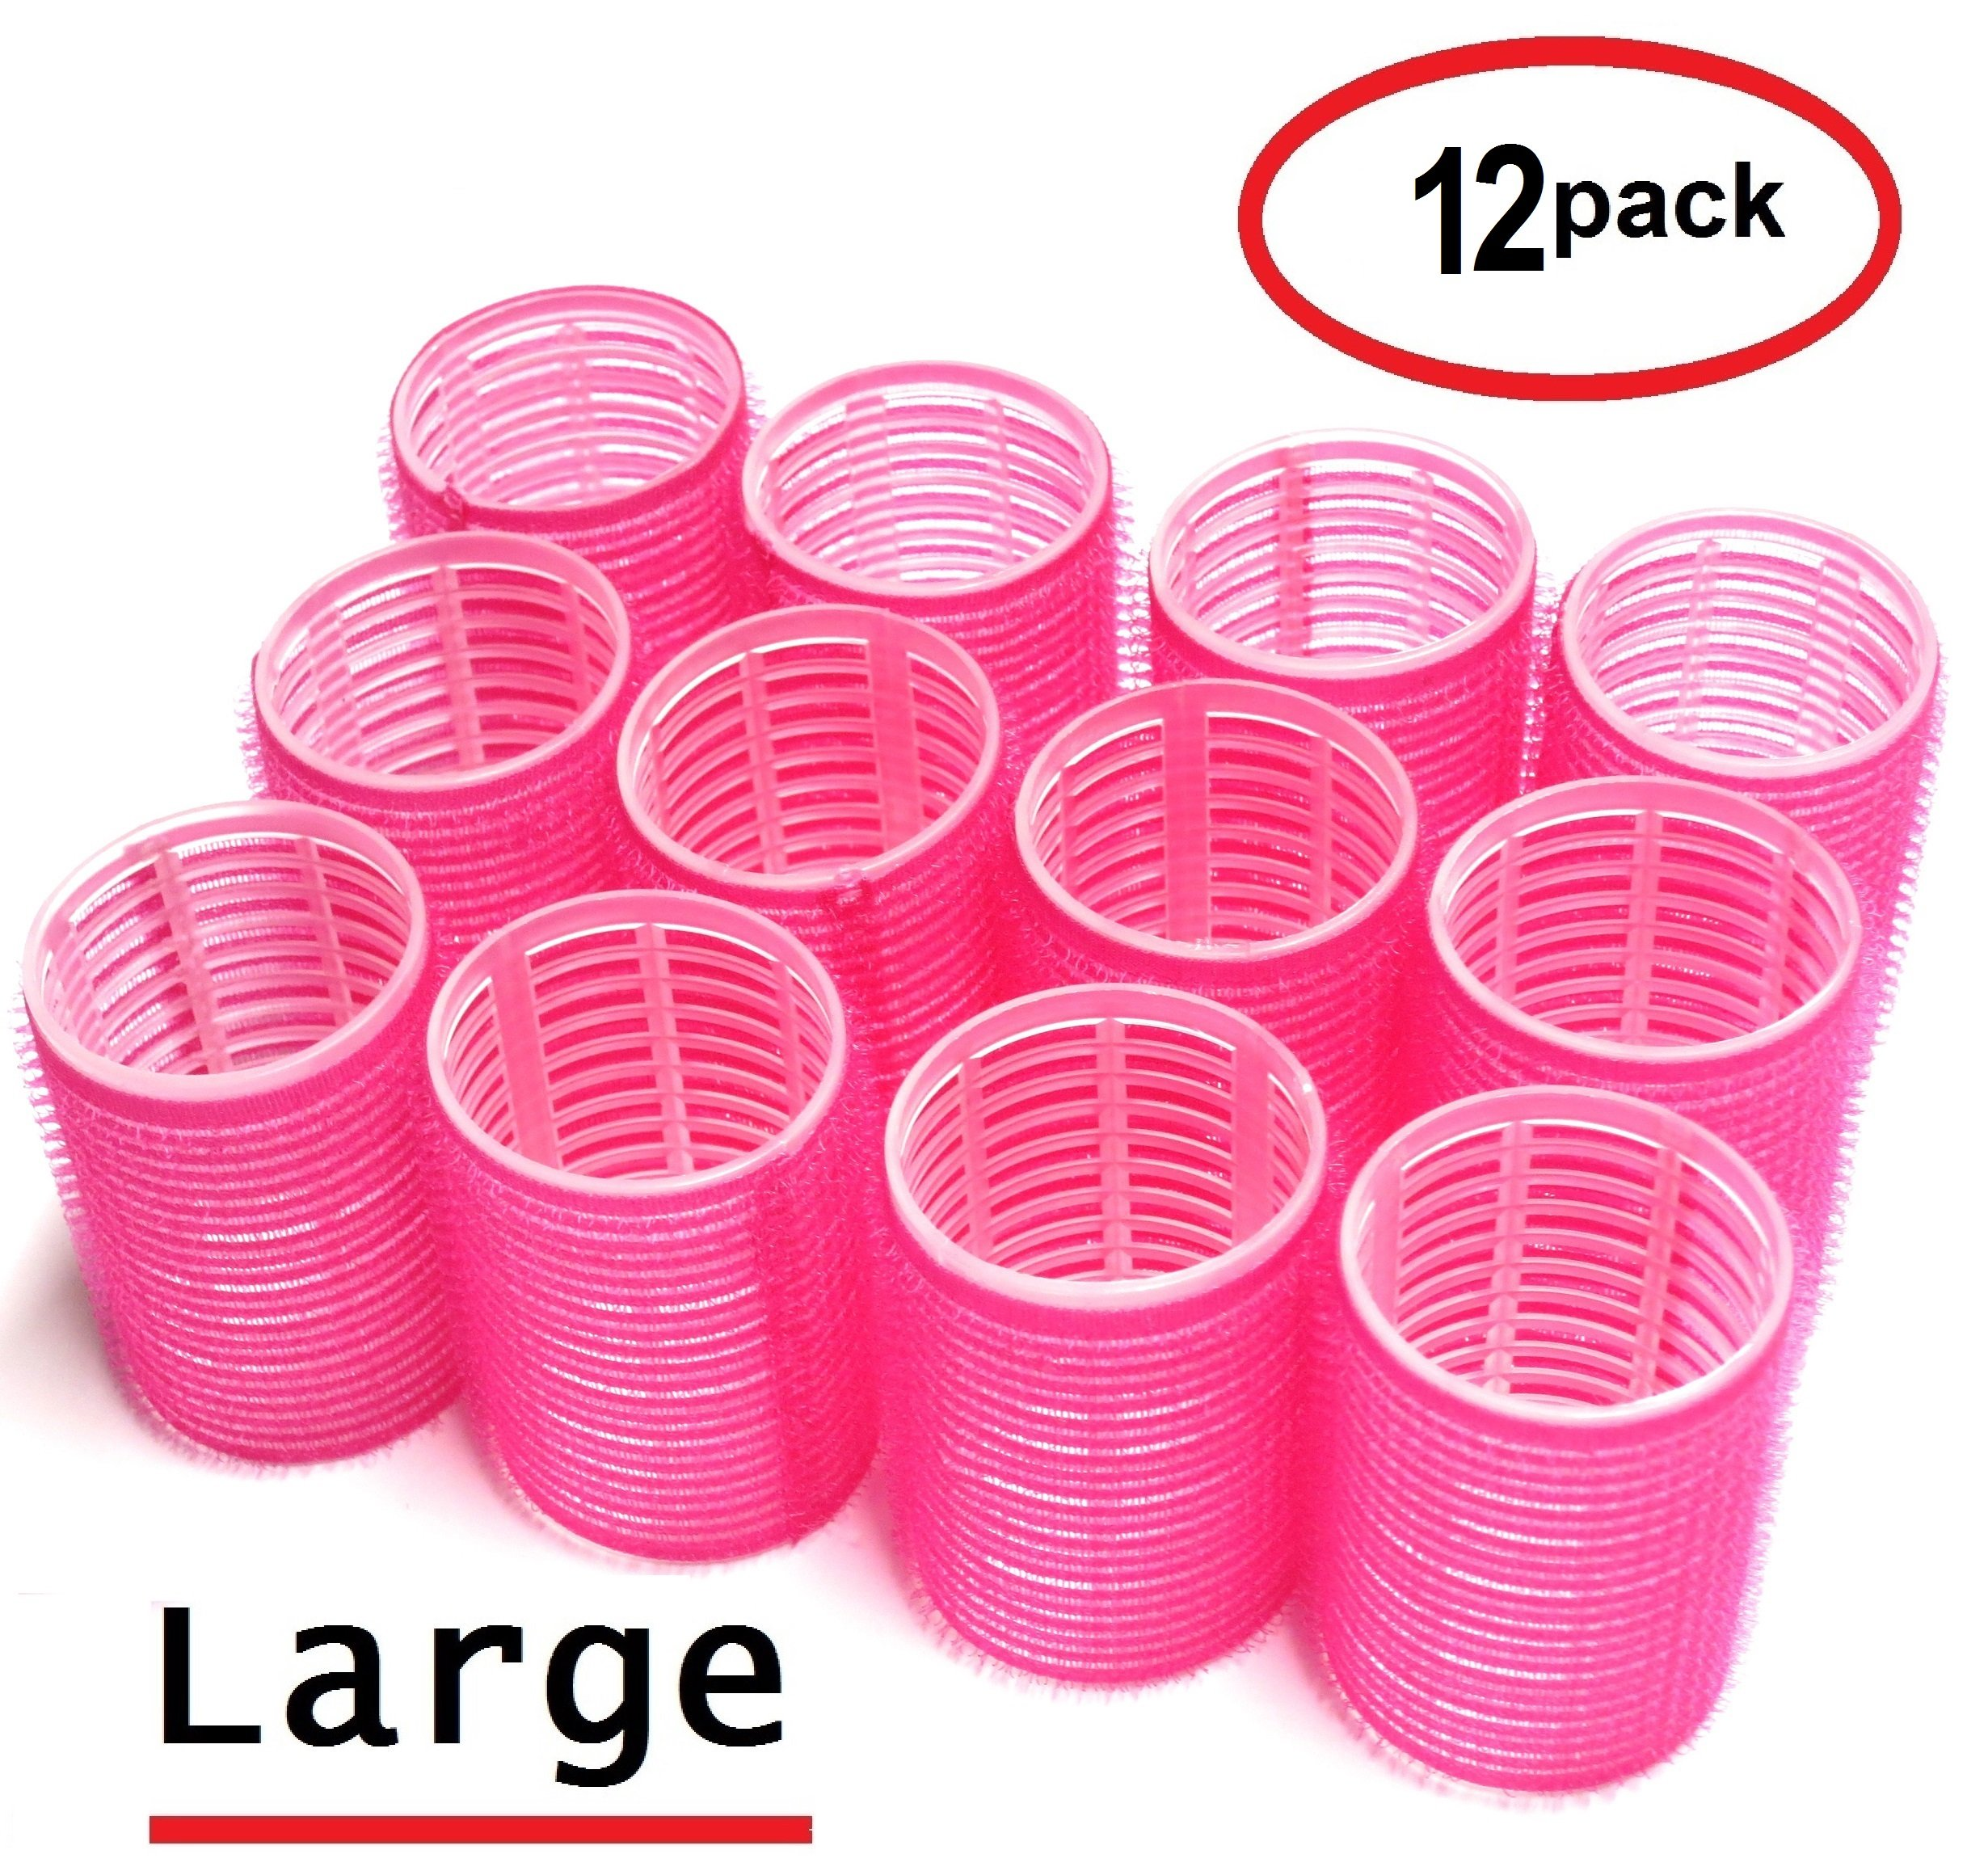 UrbHome Large Hair Rollers, Self Grip, Salon Hairdressing Curlers,Large,(Colors May Vary) ,12 Pack